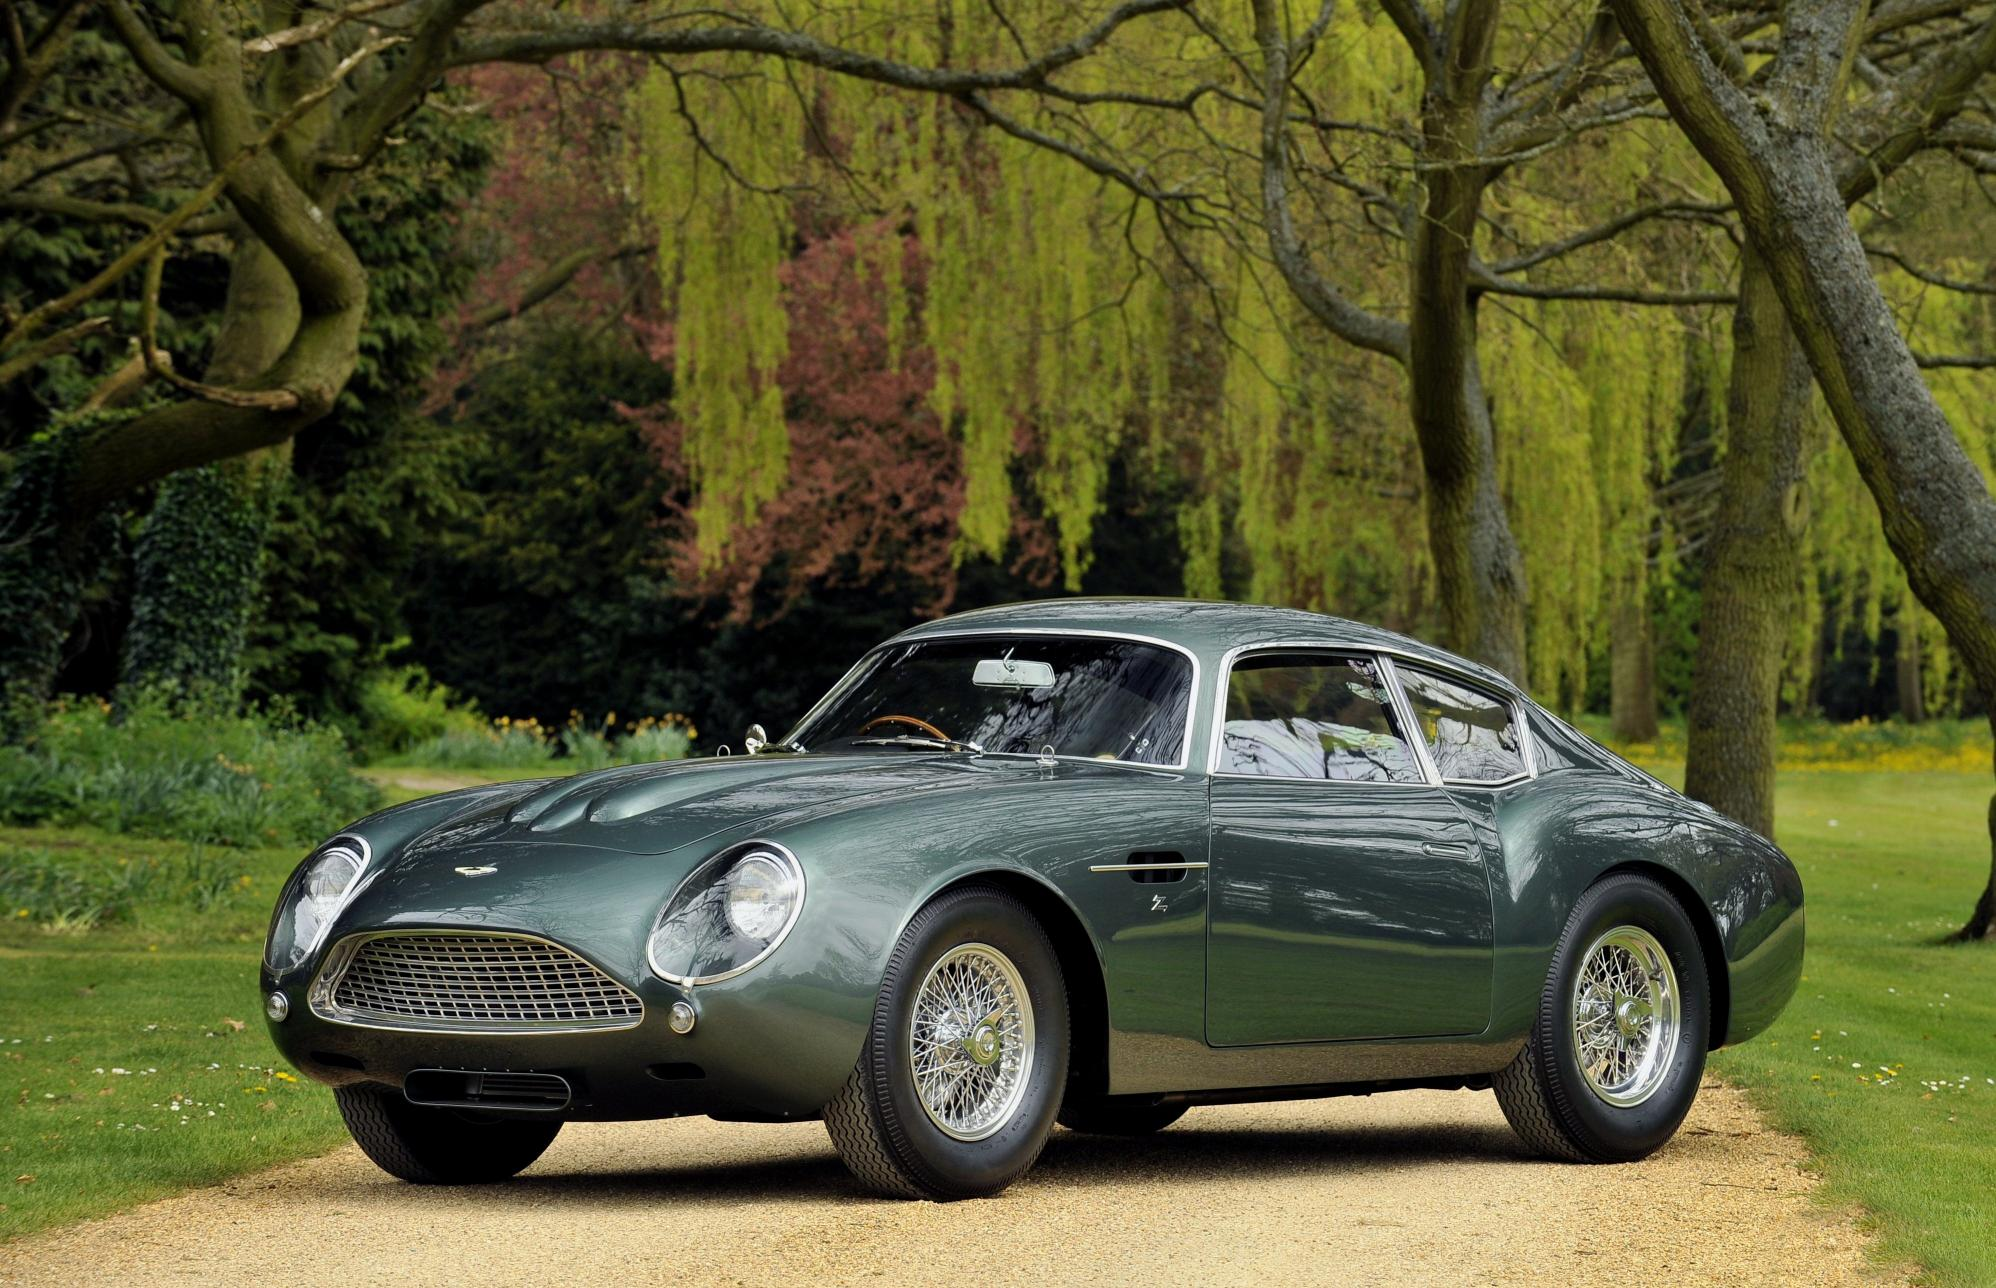 aston martin works hosts 15th annual bonhams sale | classic car